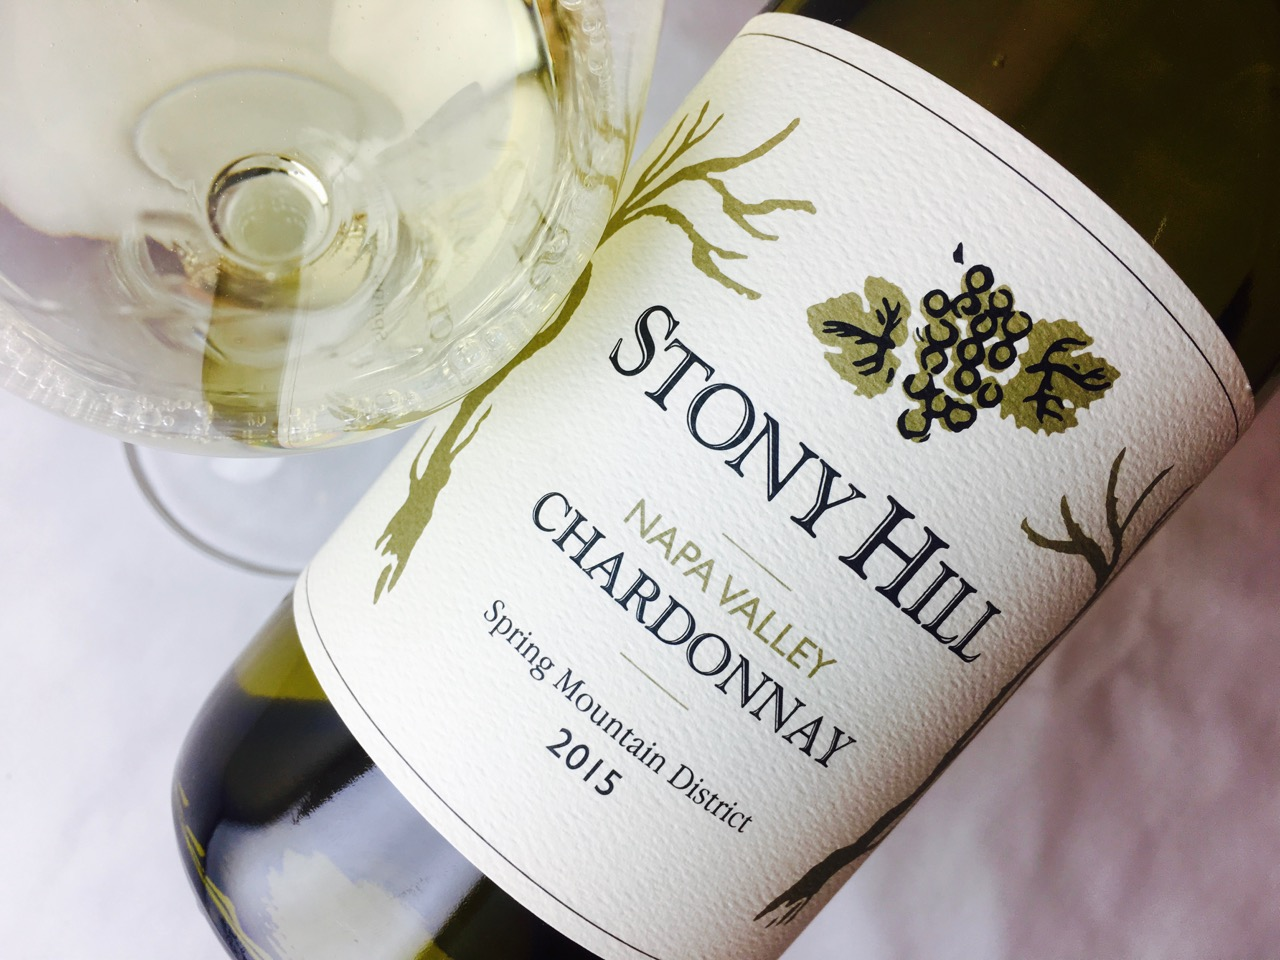 2015 Stony Hill Chardonnay Spring Mountain Napa Valley